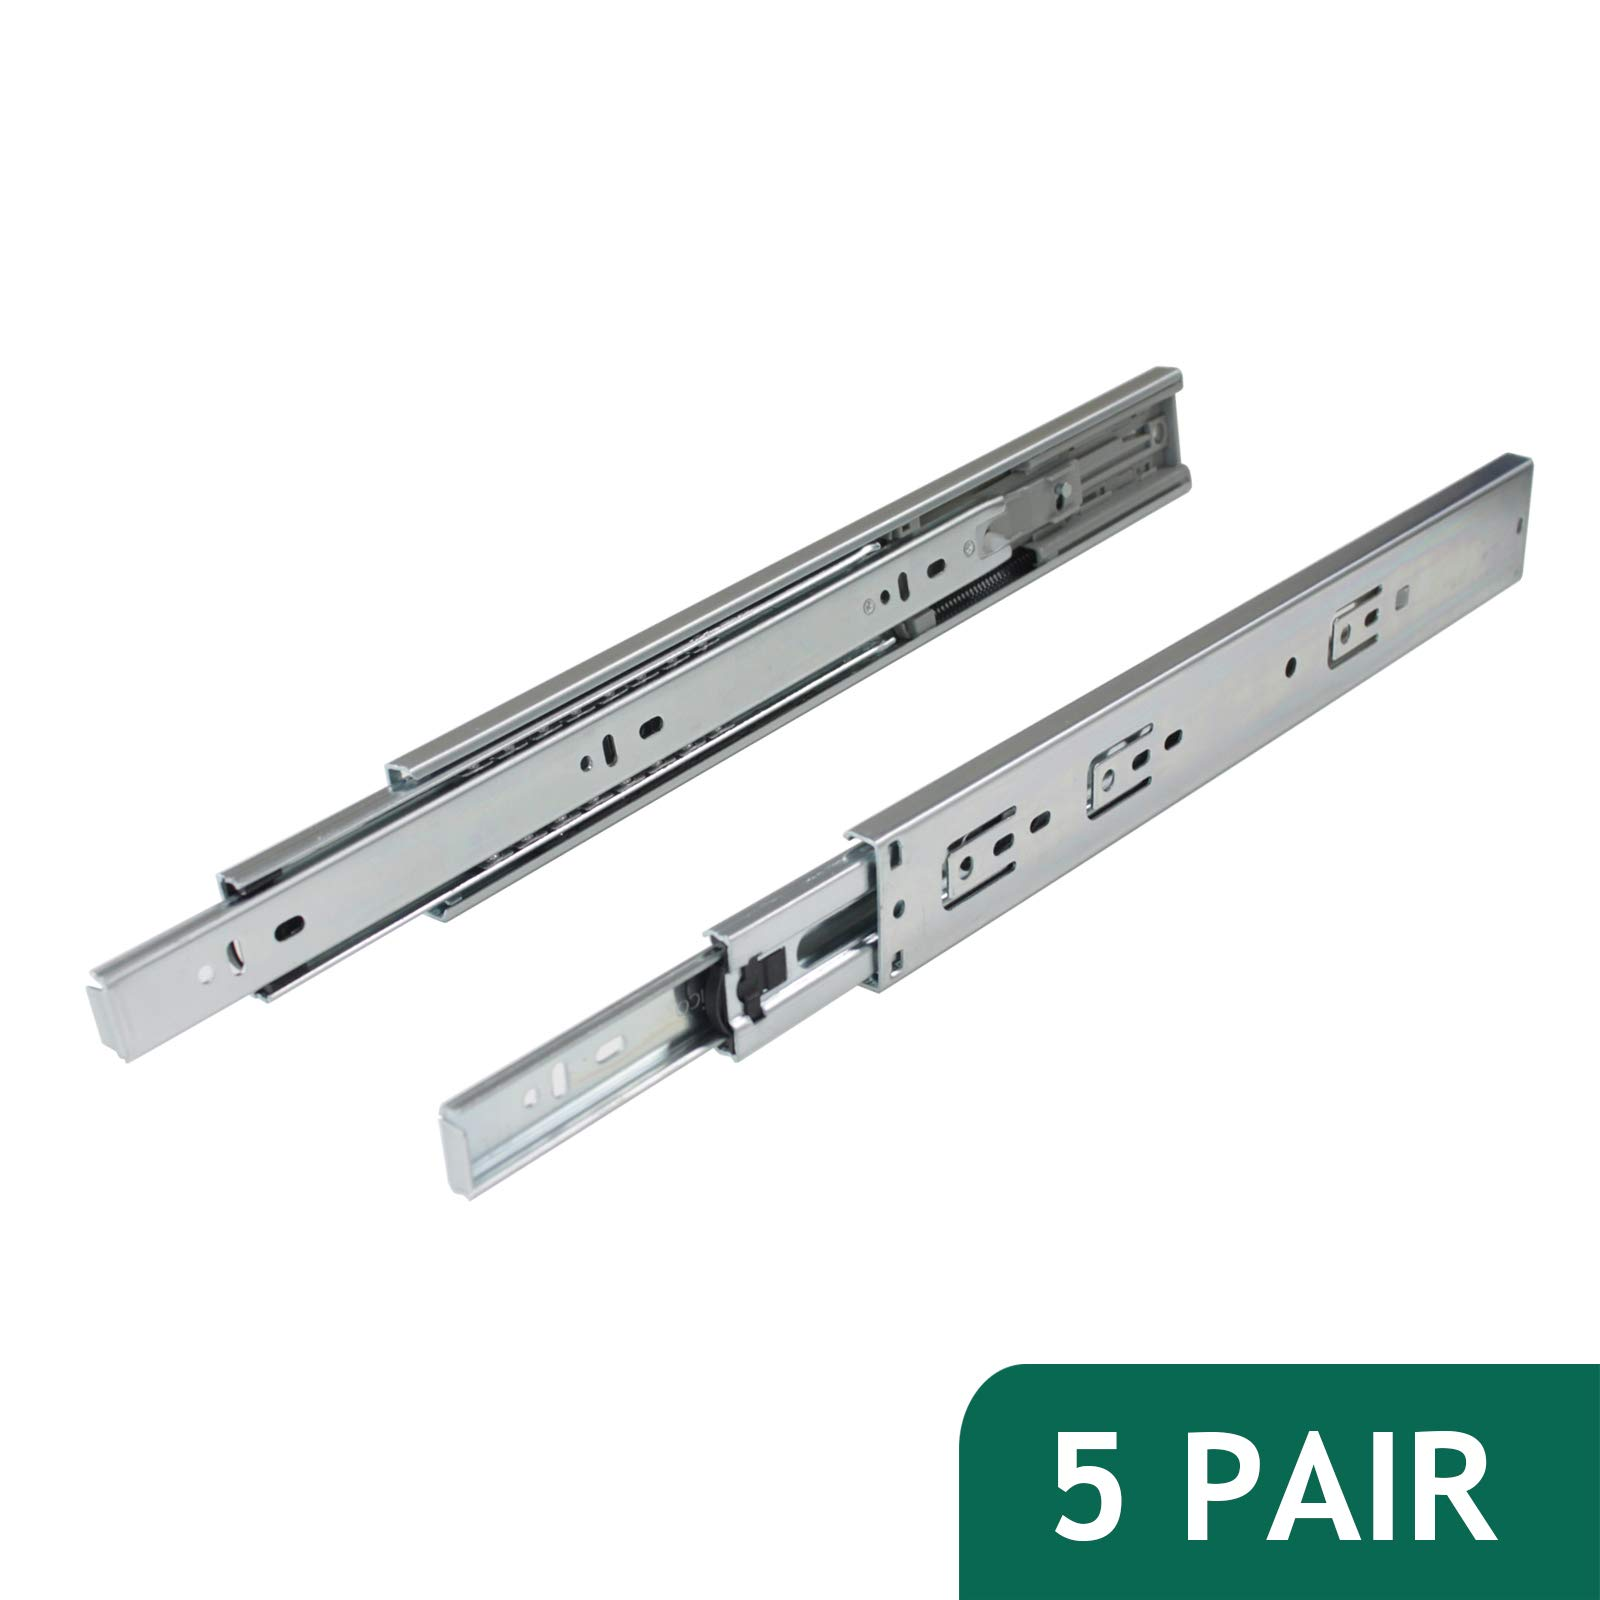 Probrico 100 LB Capacity Full Extension Soft/Self Close Ball Bearing Side Mount Drawer Slides 14 Inch 5 Pair